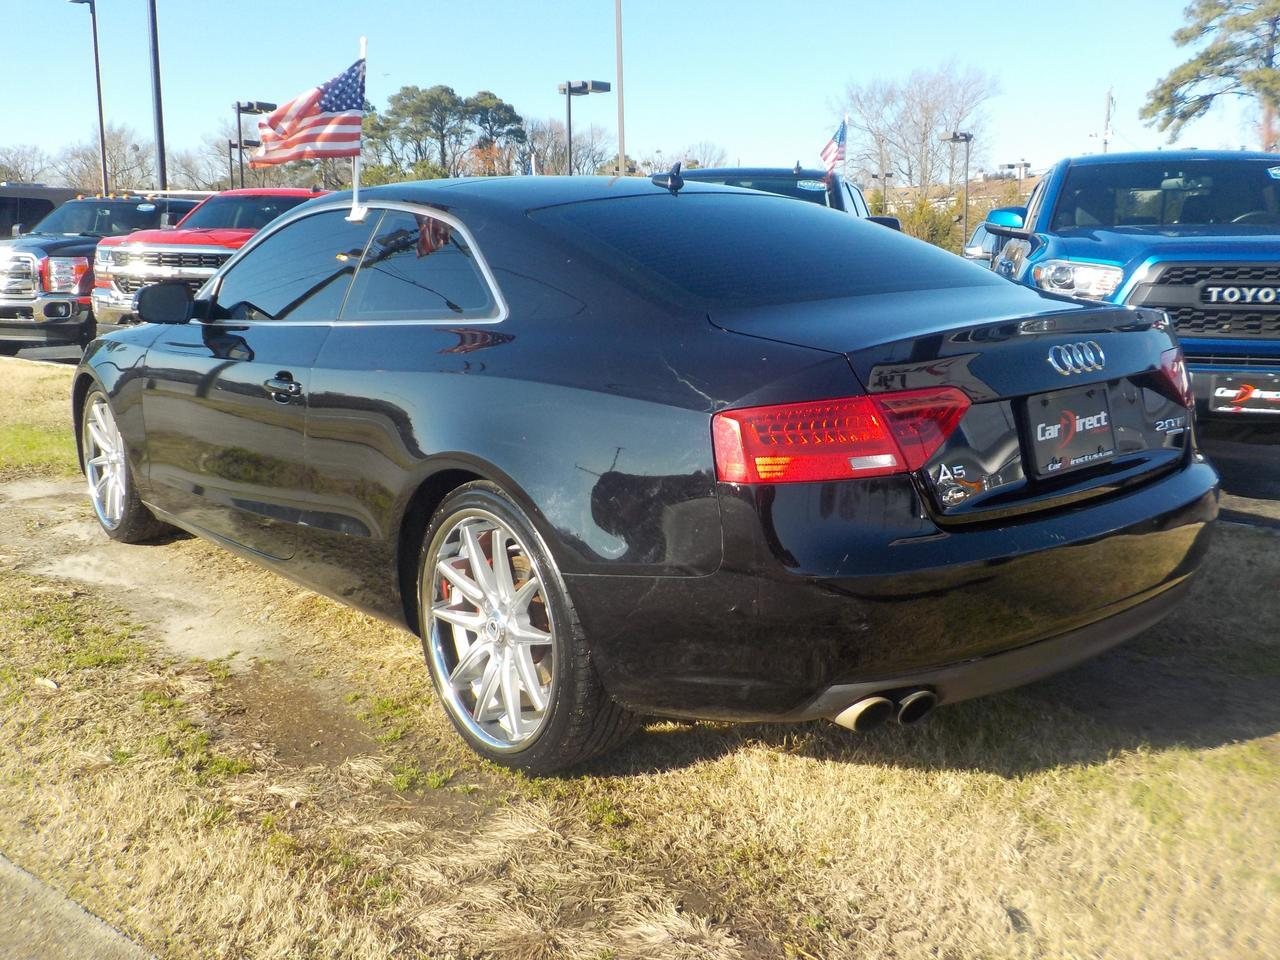 2013 AUDI 4-5 2.0T QUATTRO PREMIUM+ AT AWD, LEATHER SUNROOF, BACKUP CAMERA, ASANTI BLACK LABEL RIMS, BLUETOOTH! Virginia Beach VA